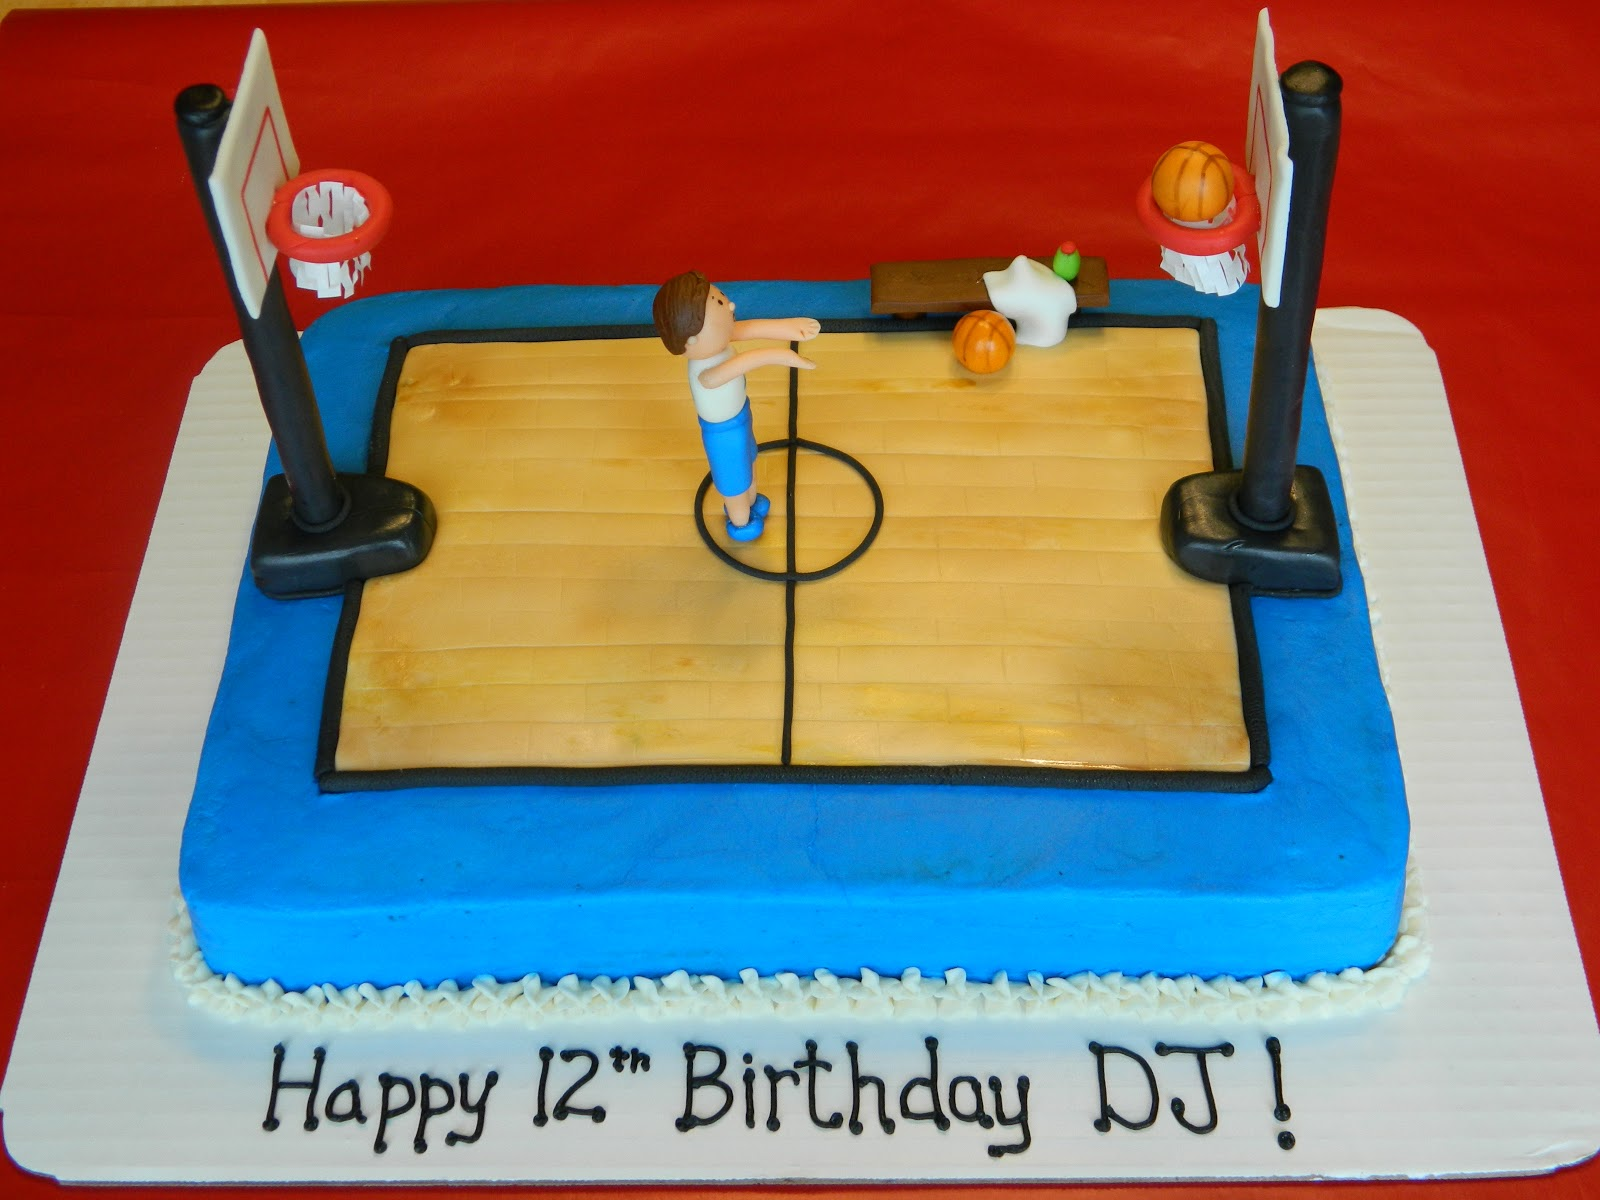 Basketball Court Cake Images : Sweet Custom Treats: A Basketball Court Birthday Cake